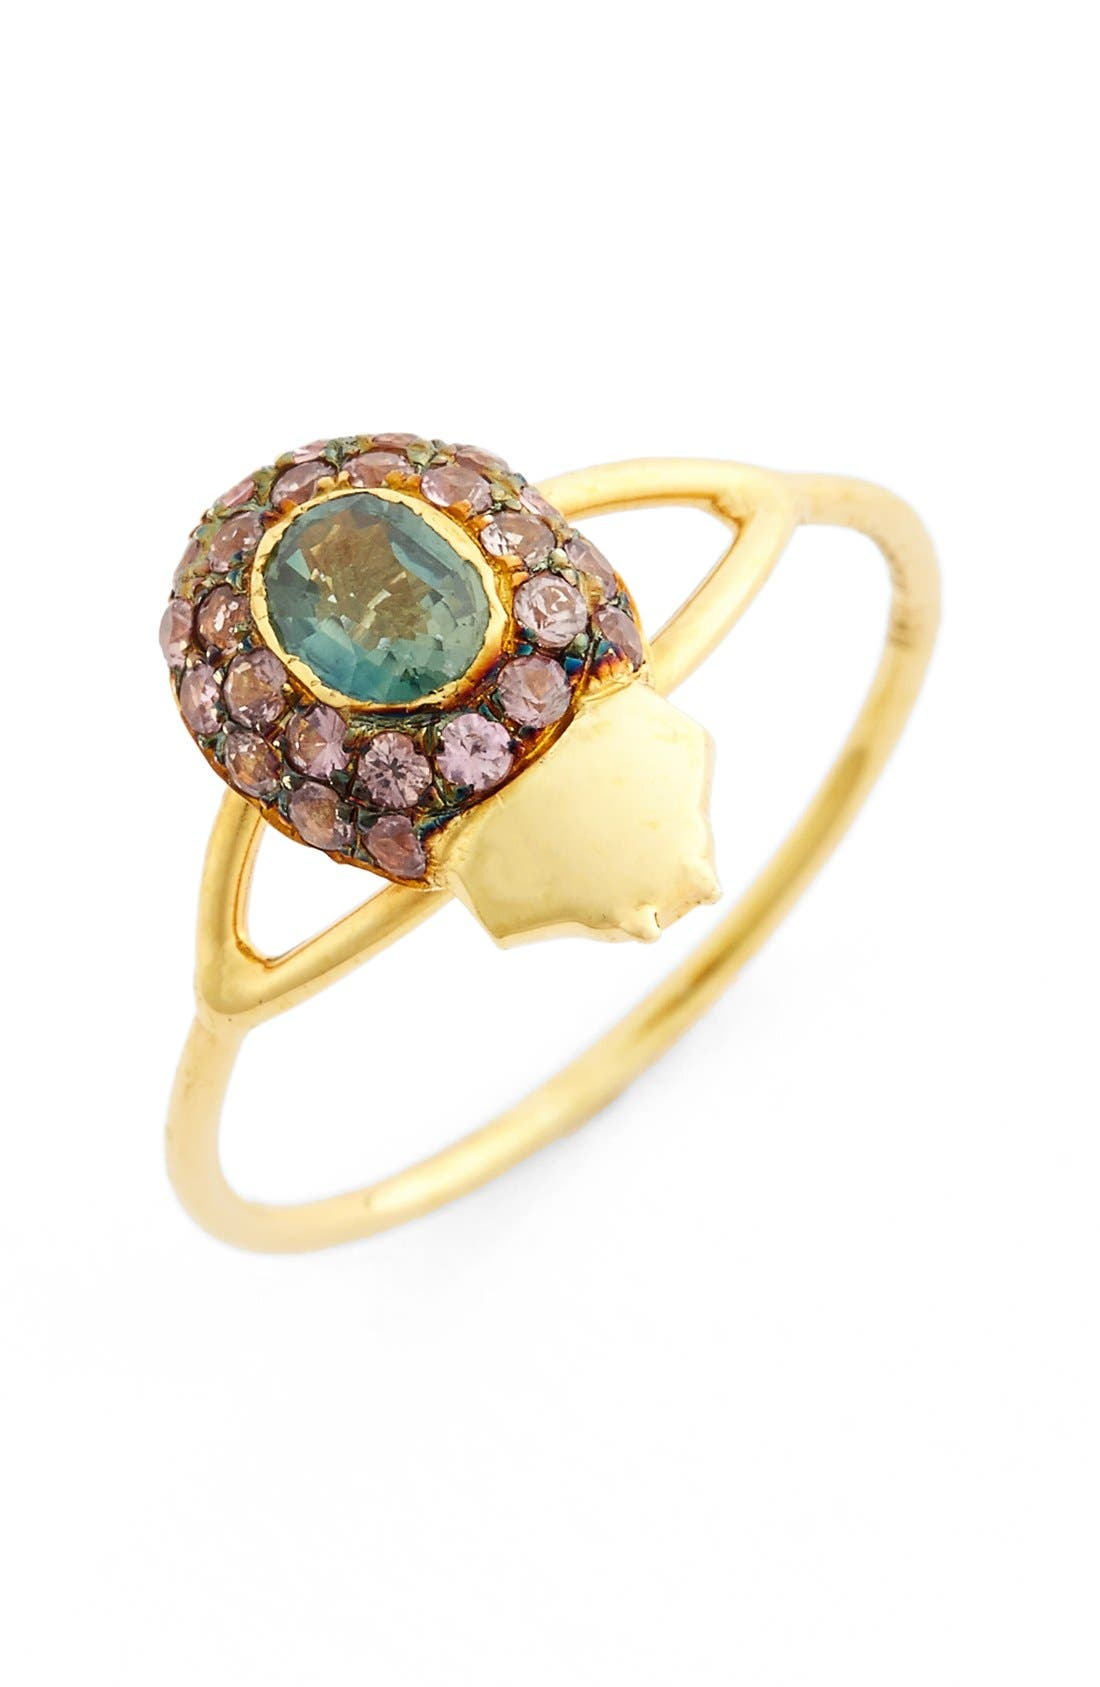 'Maat' Sapphire Ring,                         Main,                         color, Yellow Gold/ Brown Sapphire